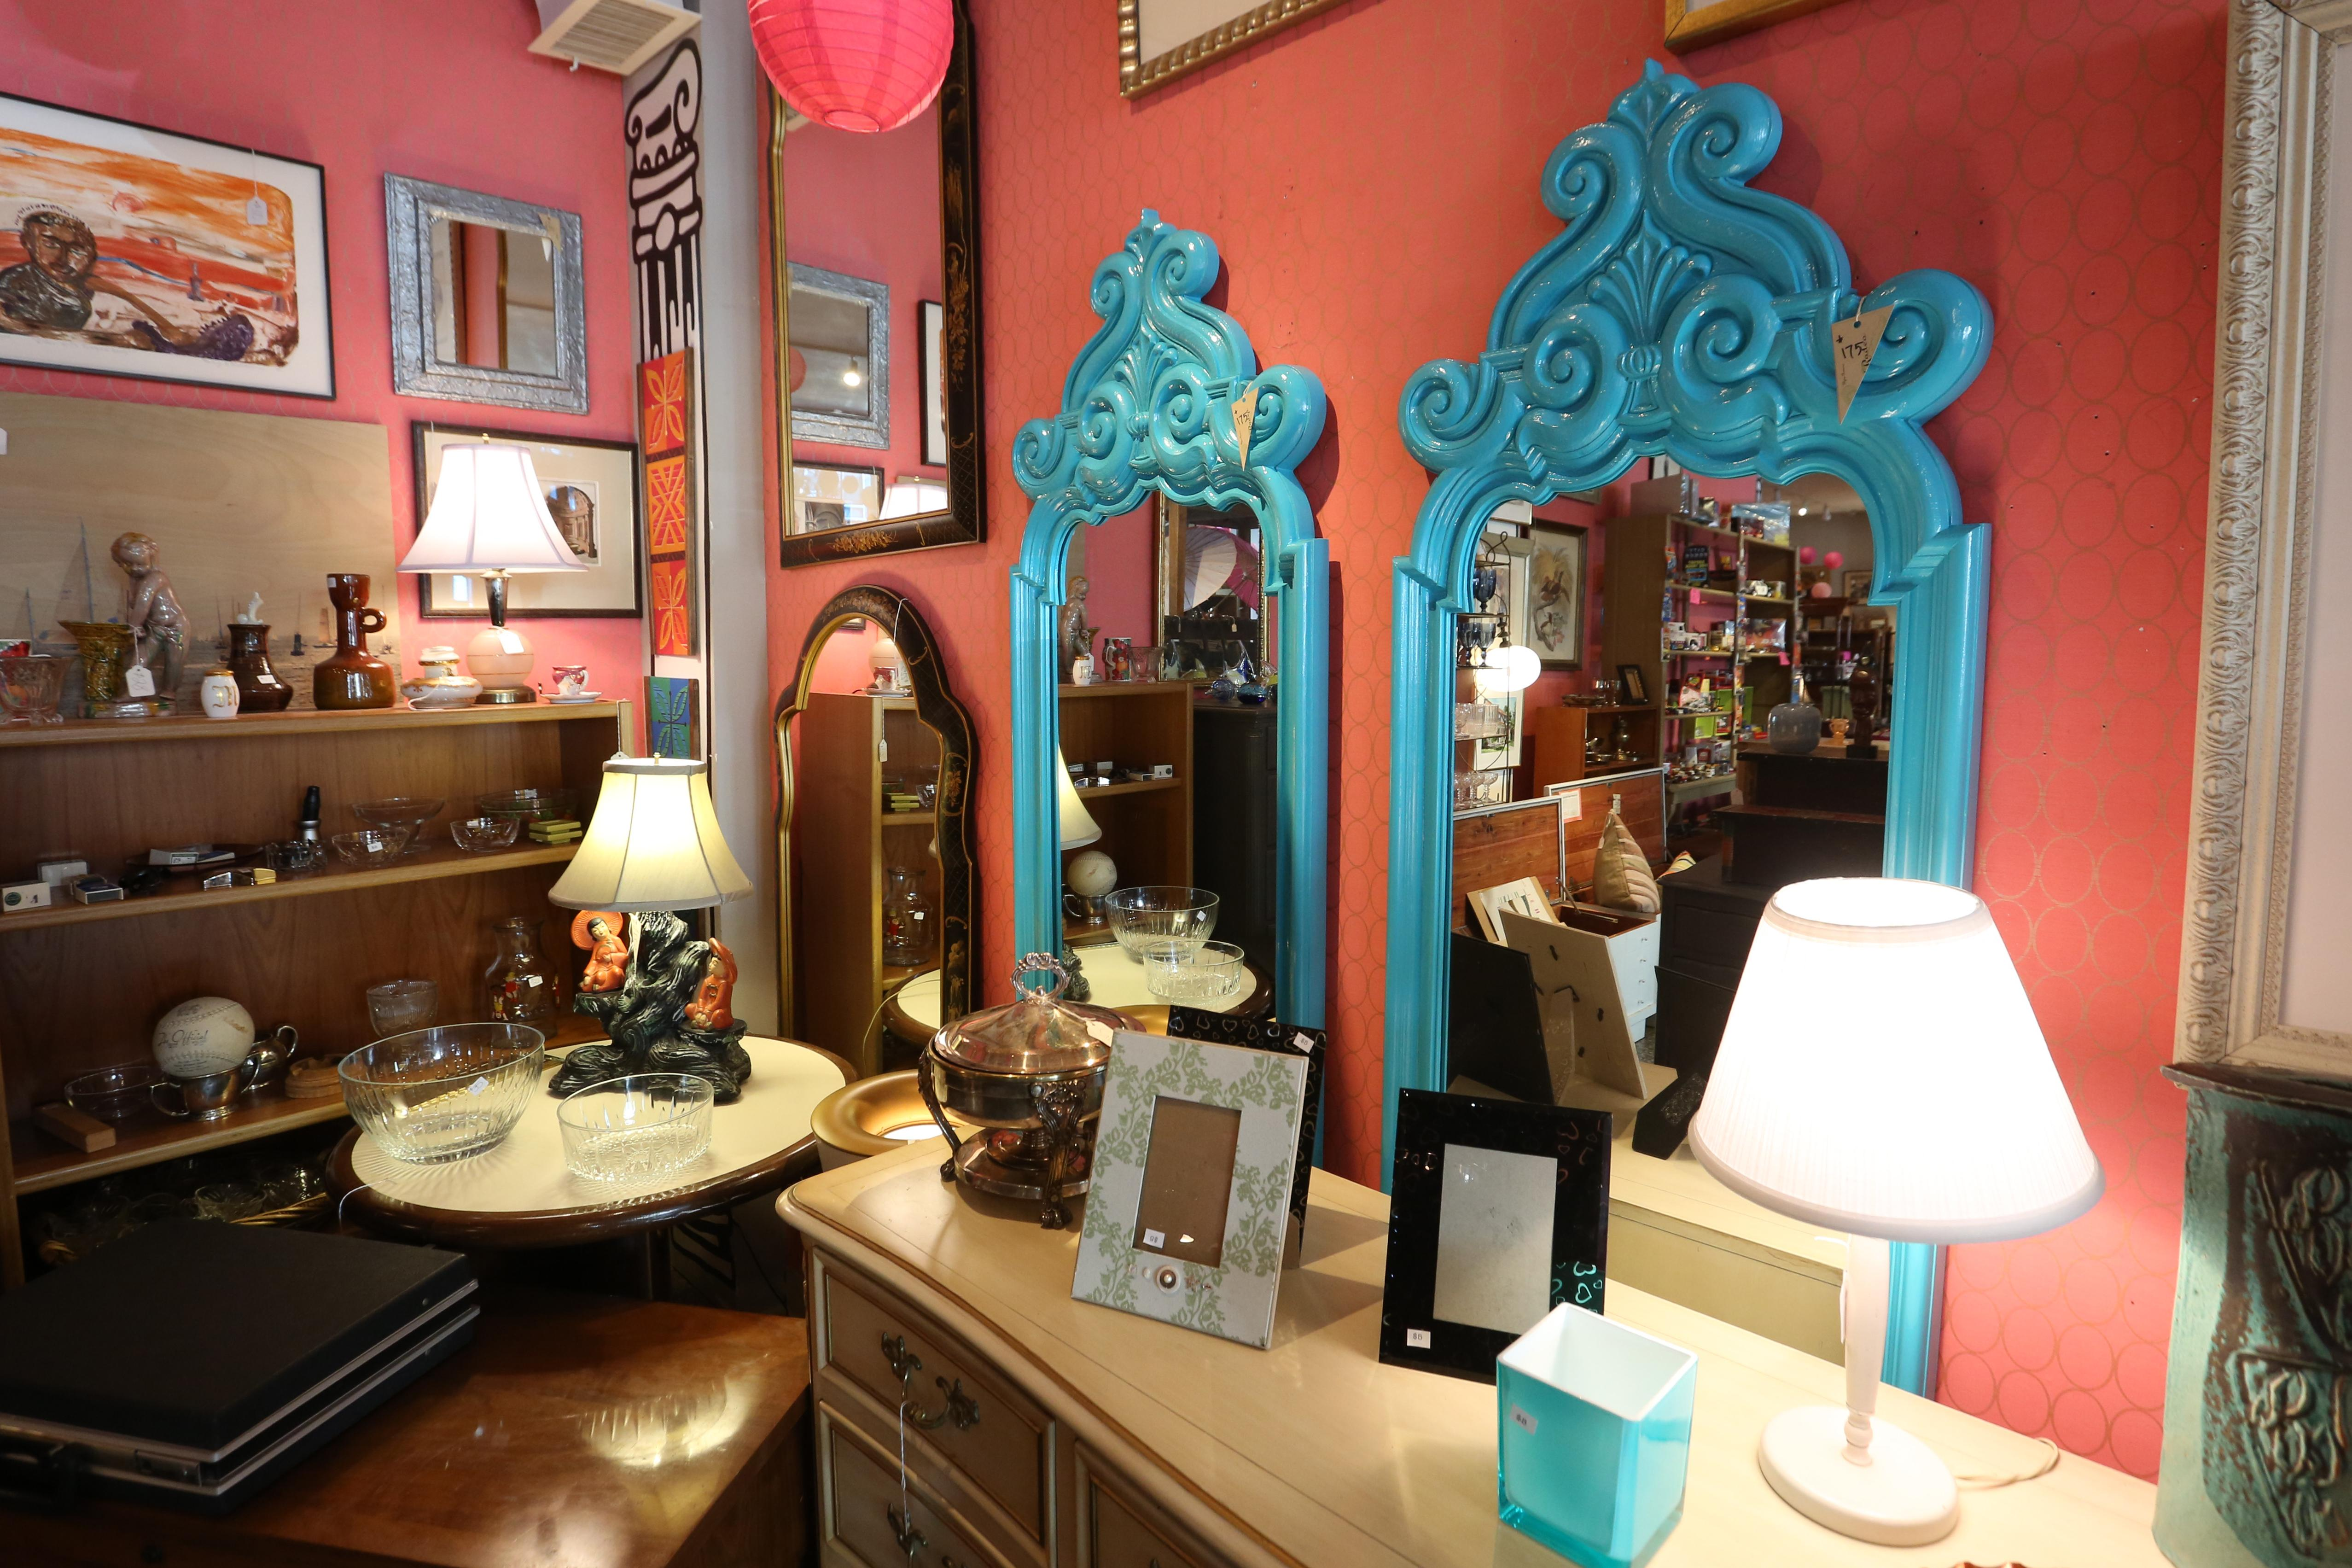 Mirror - $175 available at Miss Pixie's. (Amanda Andrade-Rhoades/DC Refined)